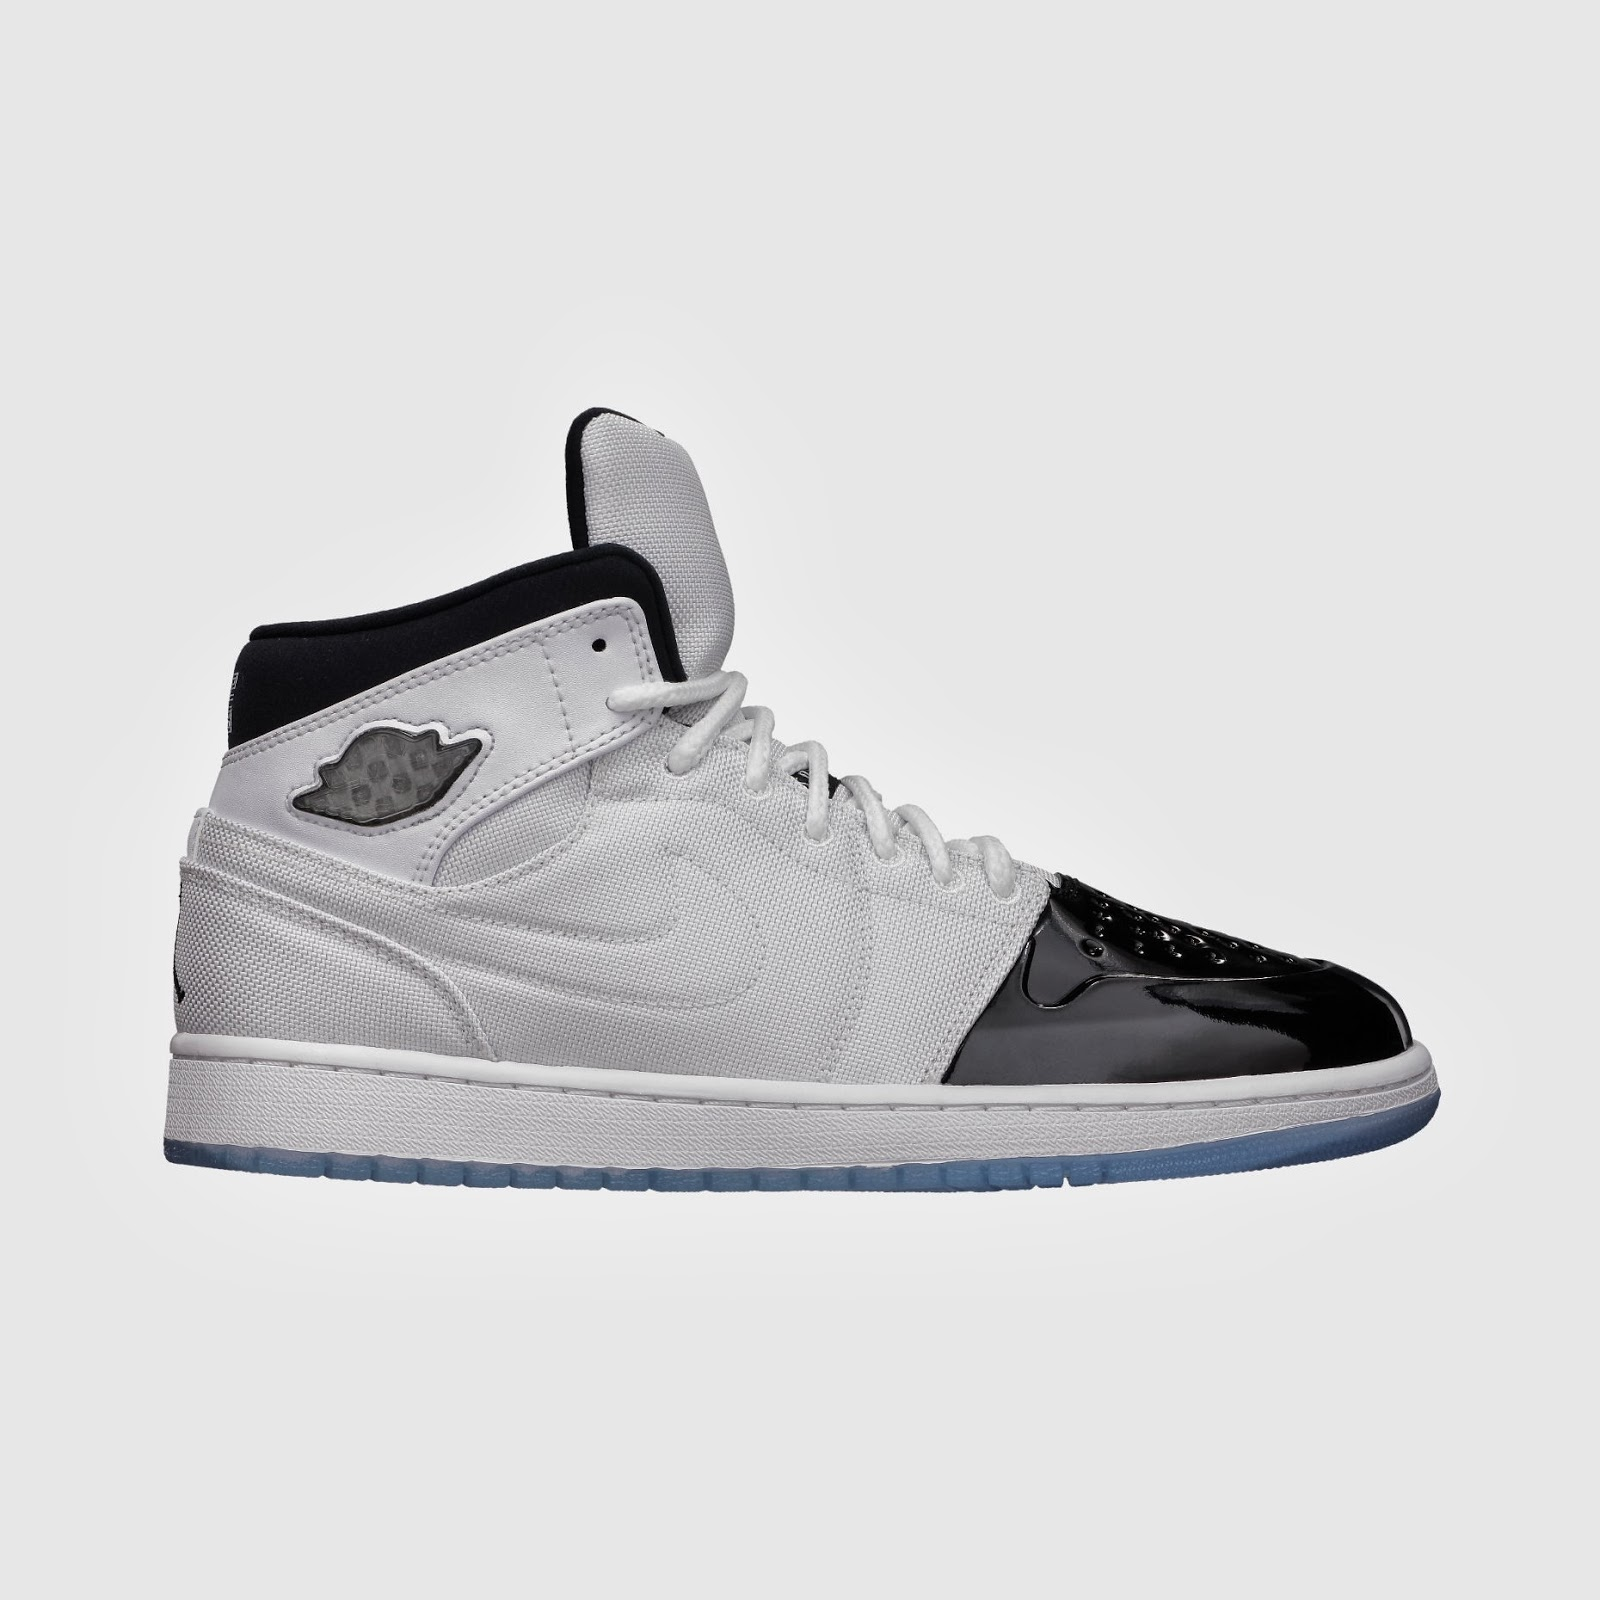 Mens Jordan Shoes Retro